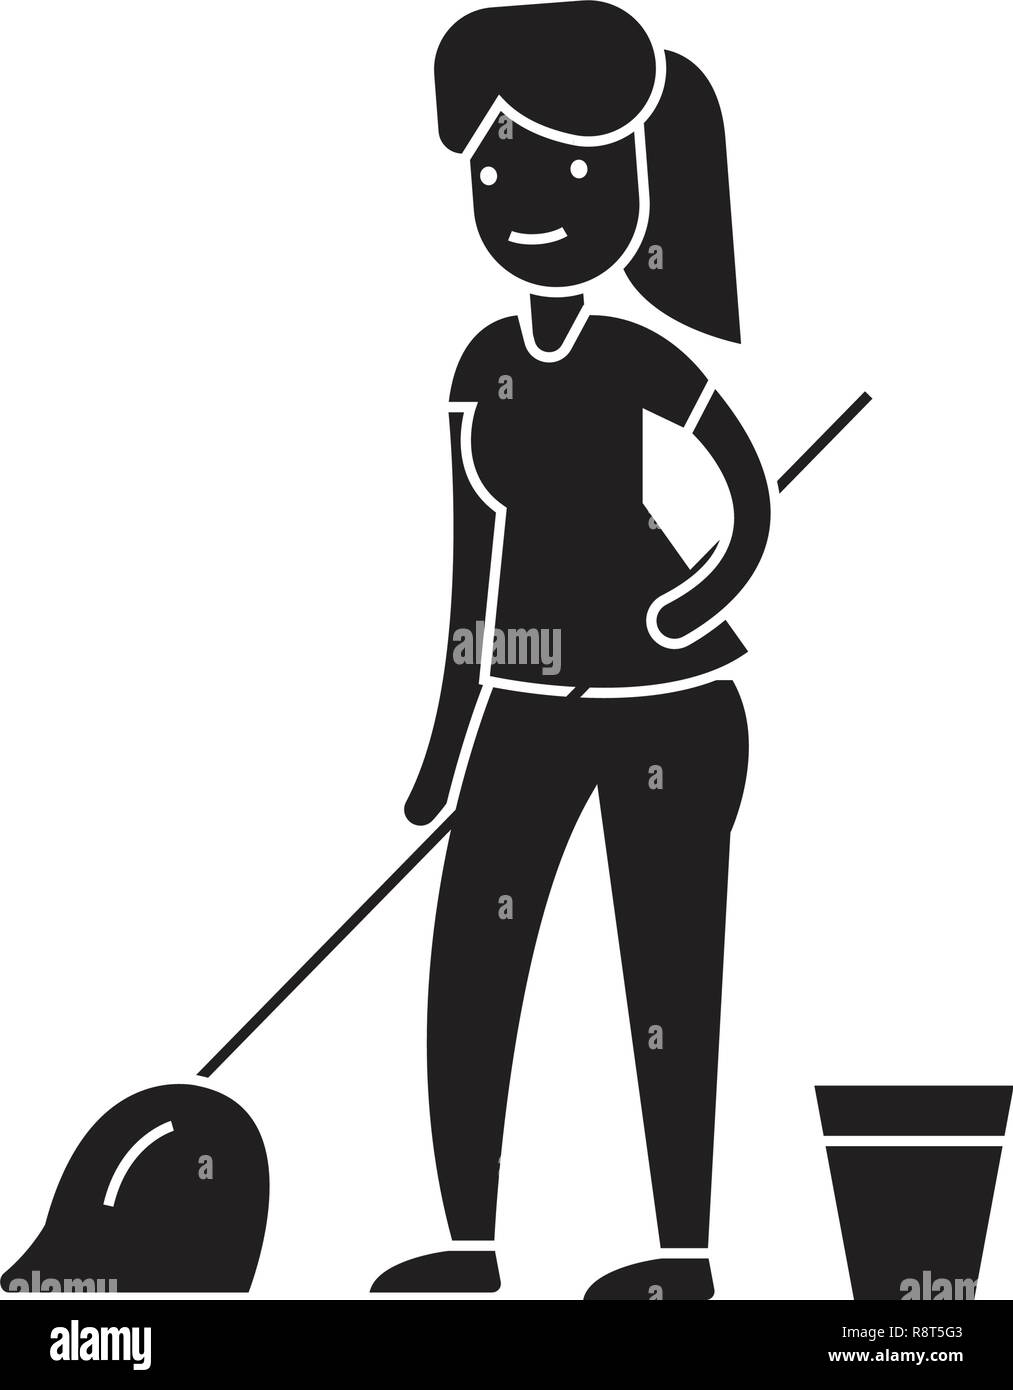 Cleaning with a mop black vector concept icon. Cleaning with a mop flat illustration, sign - Stock Vector